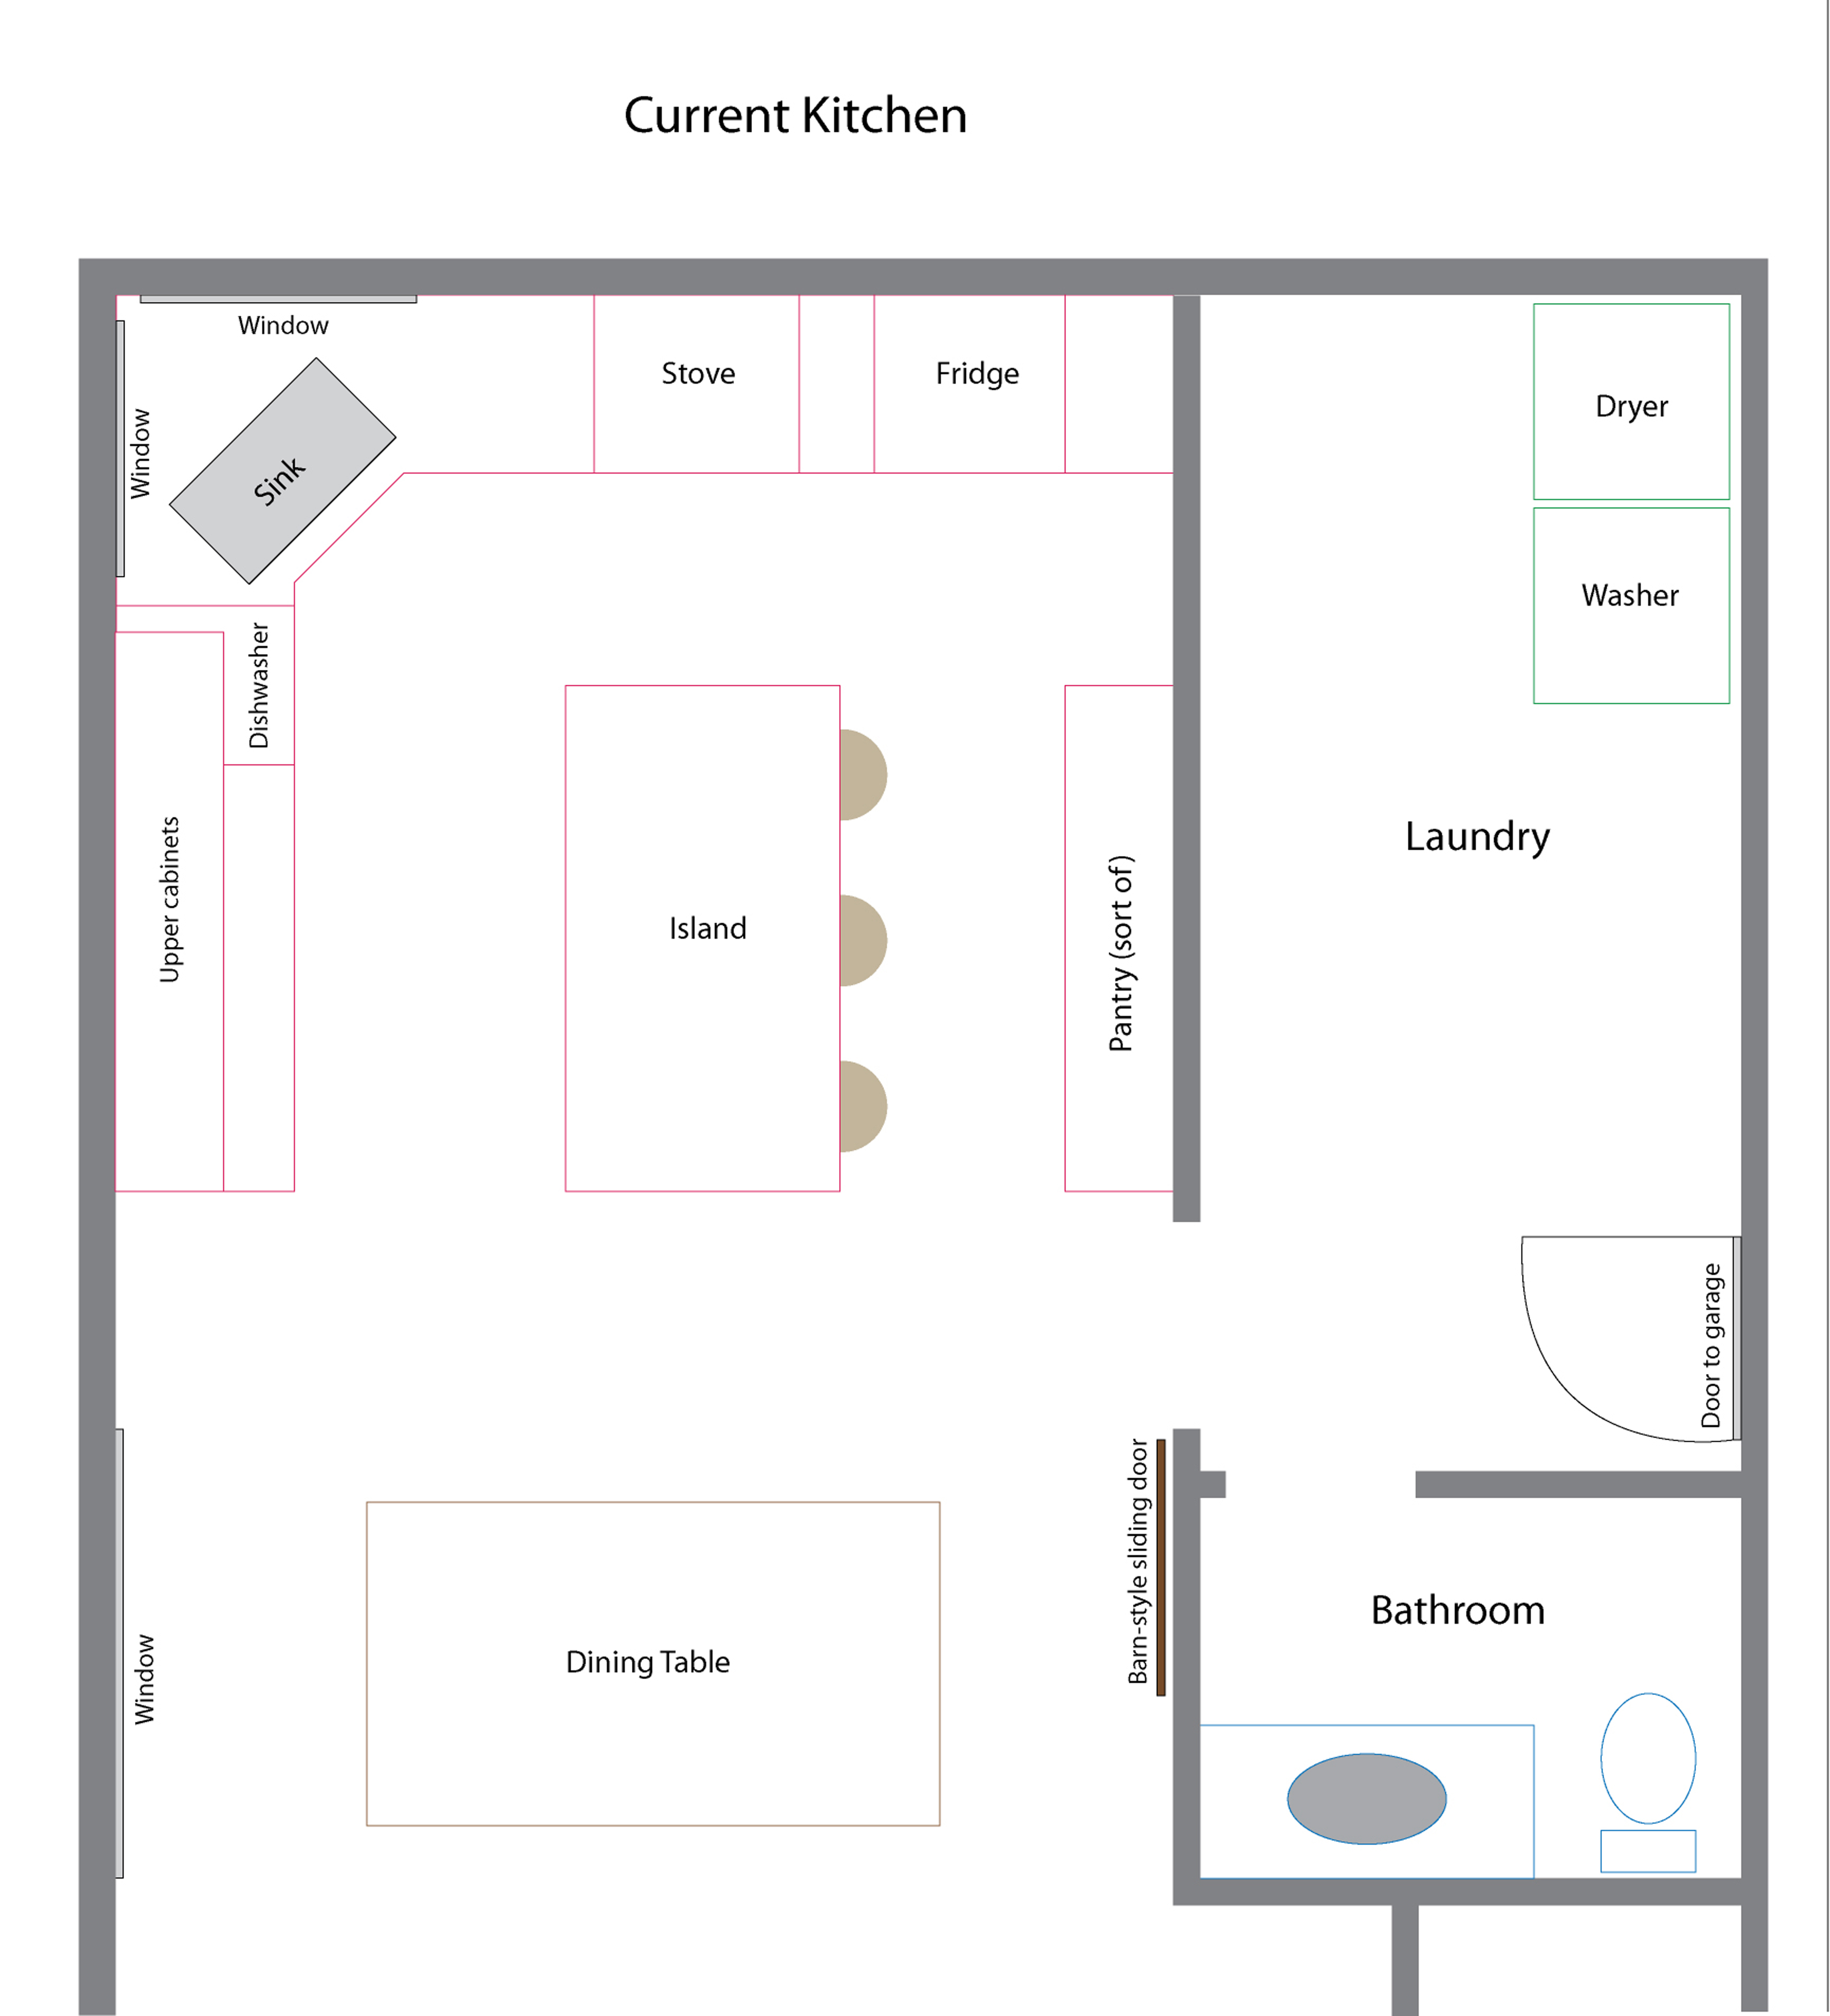 Kitchen Floor Layout Planner